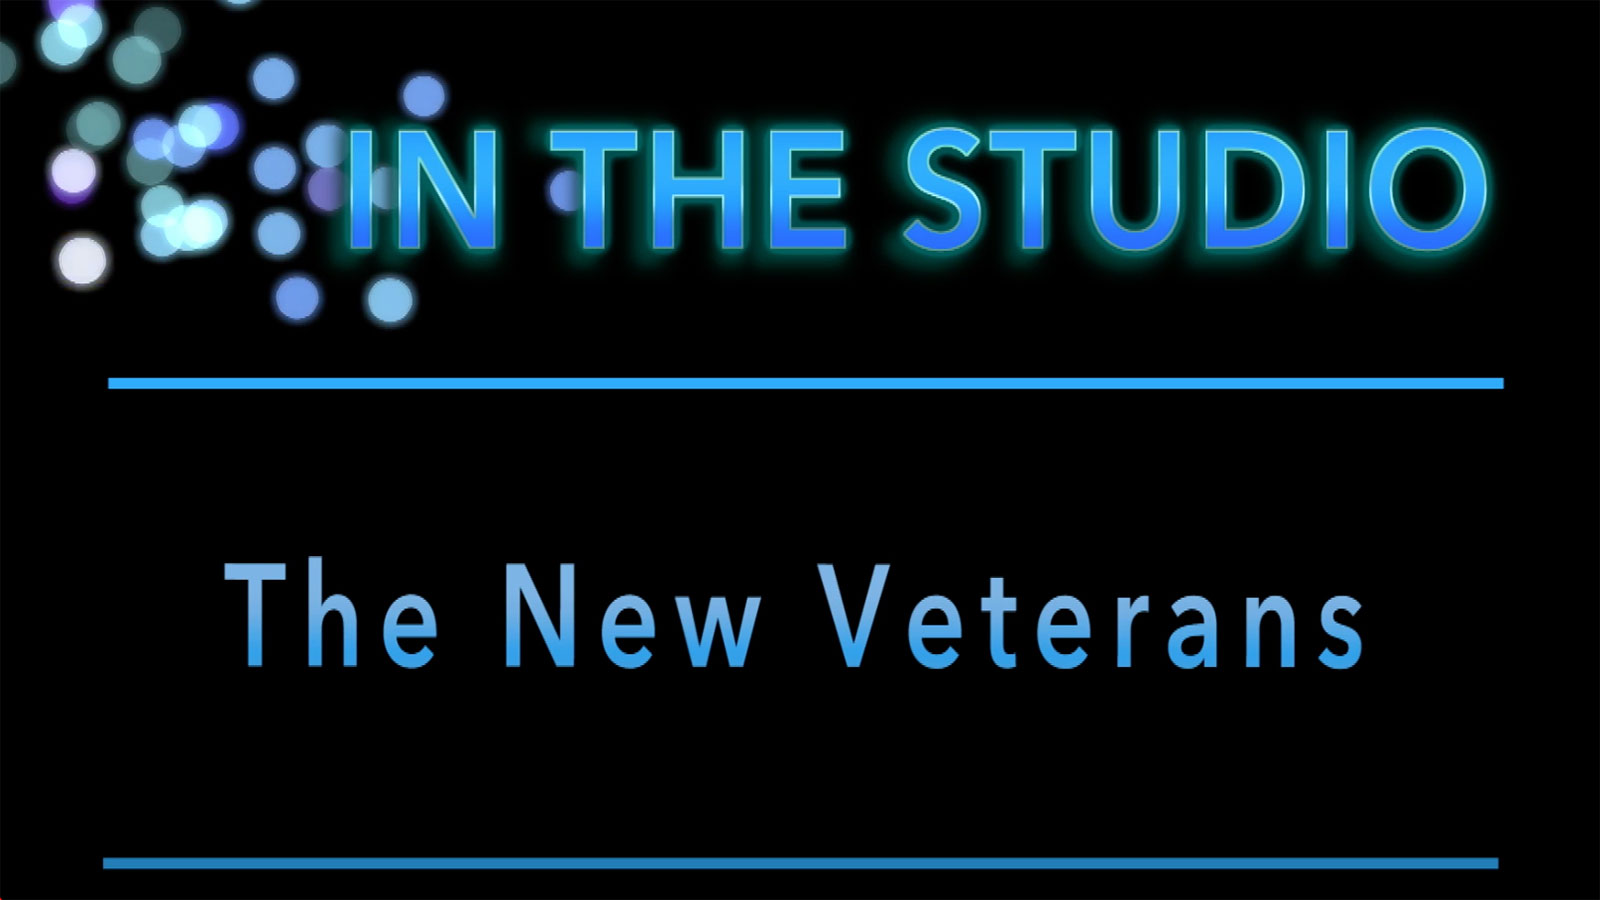 In the Studio: The New Veterans